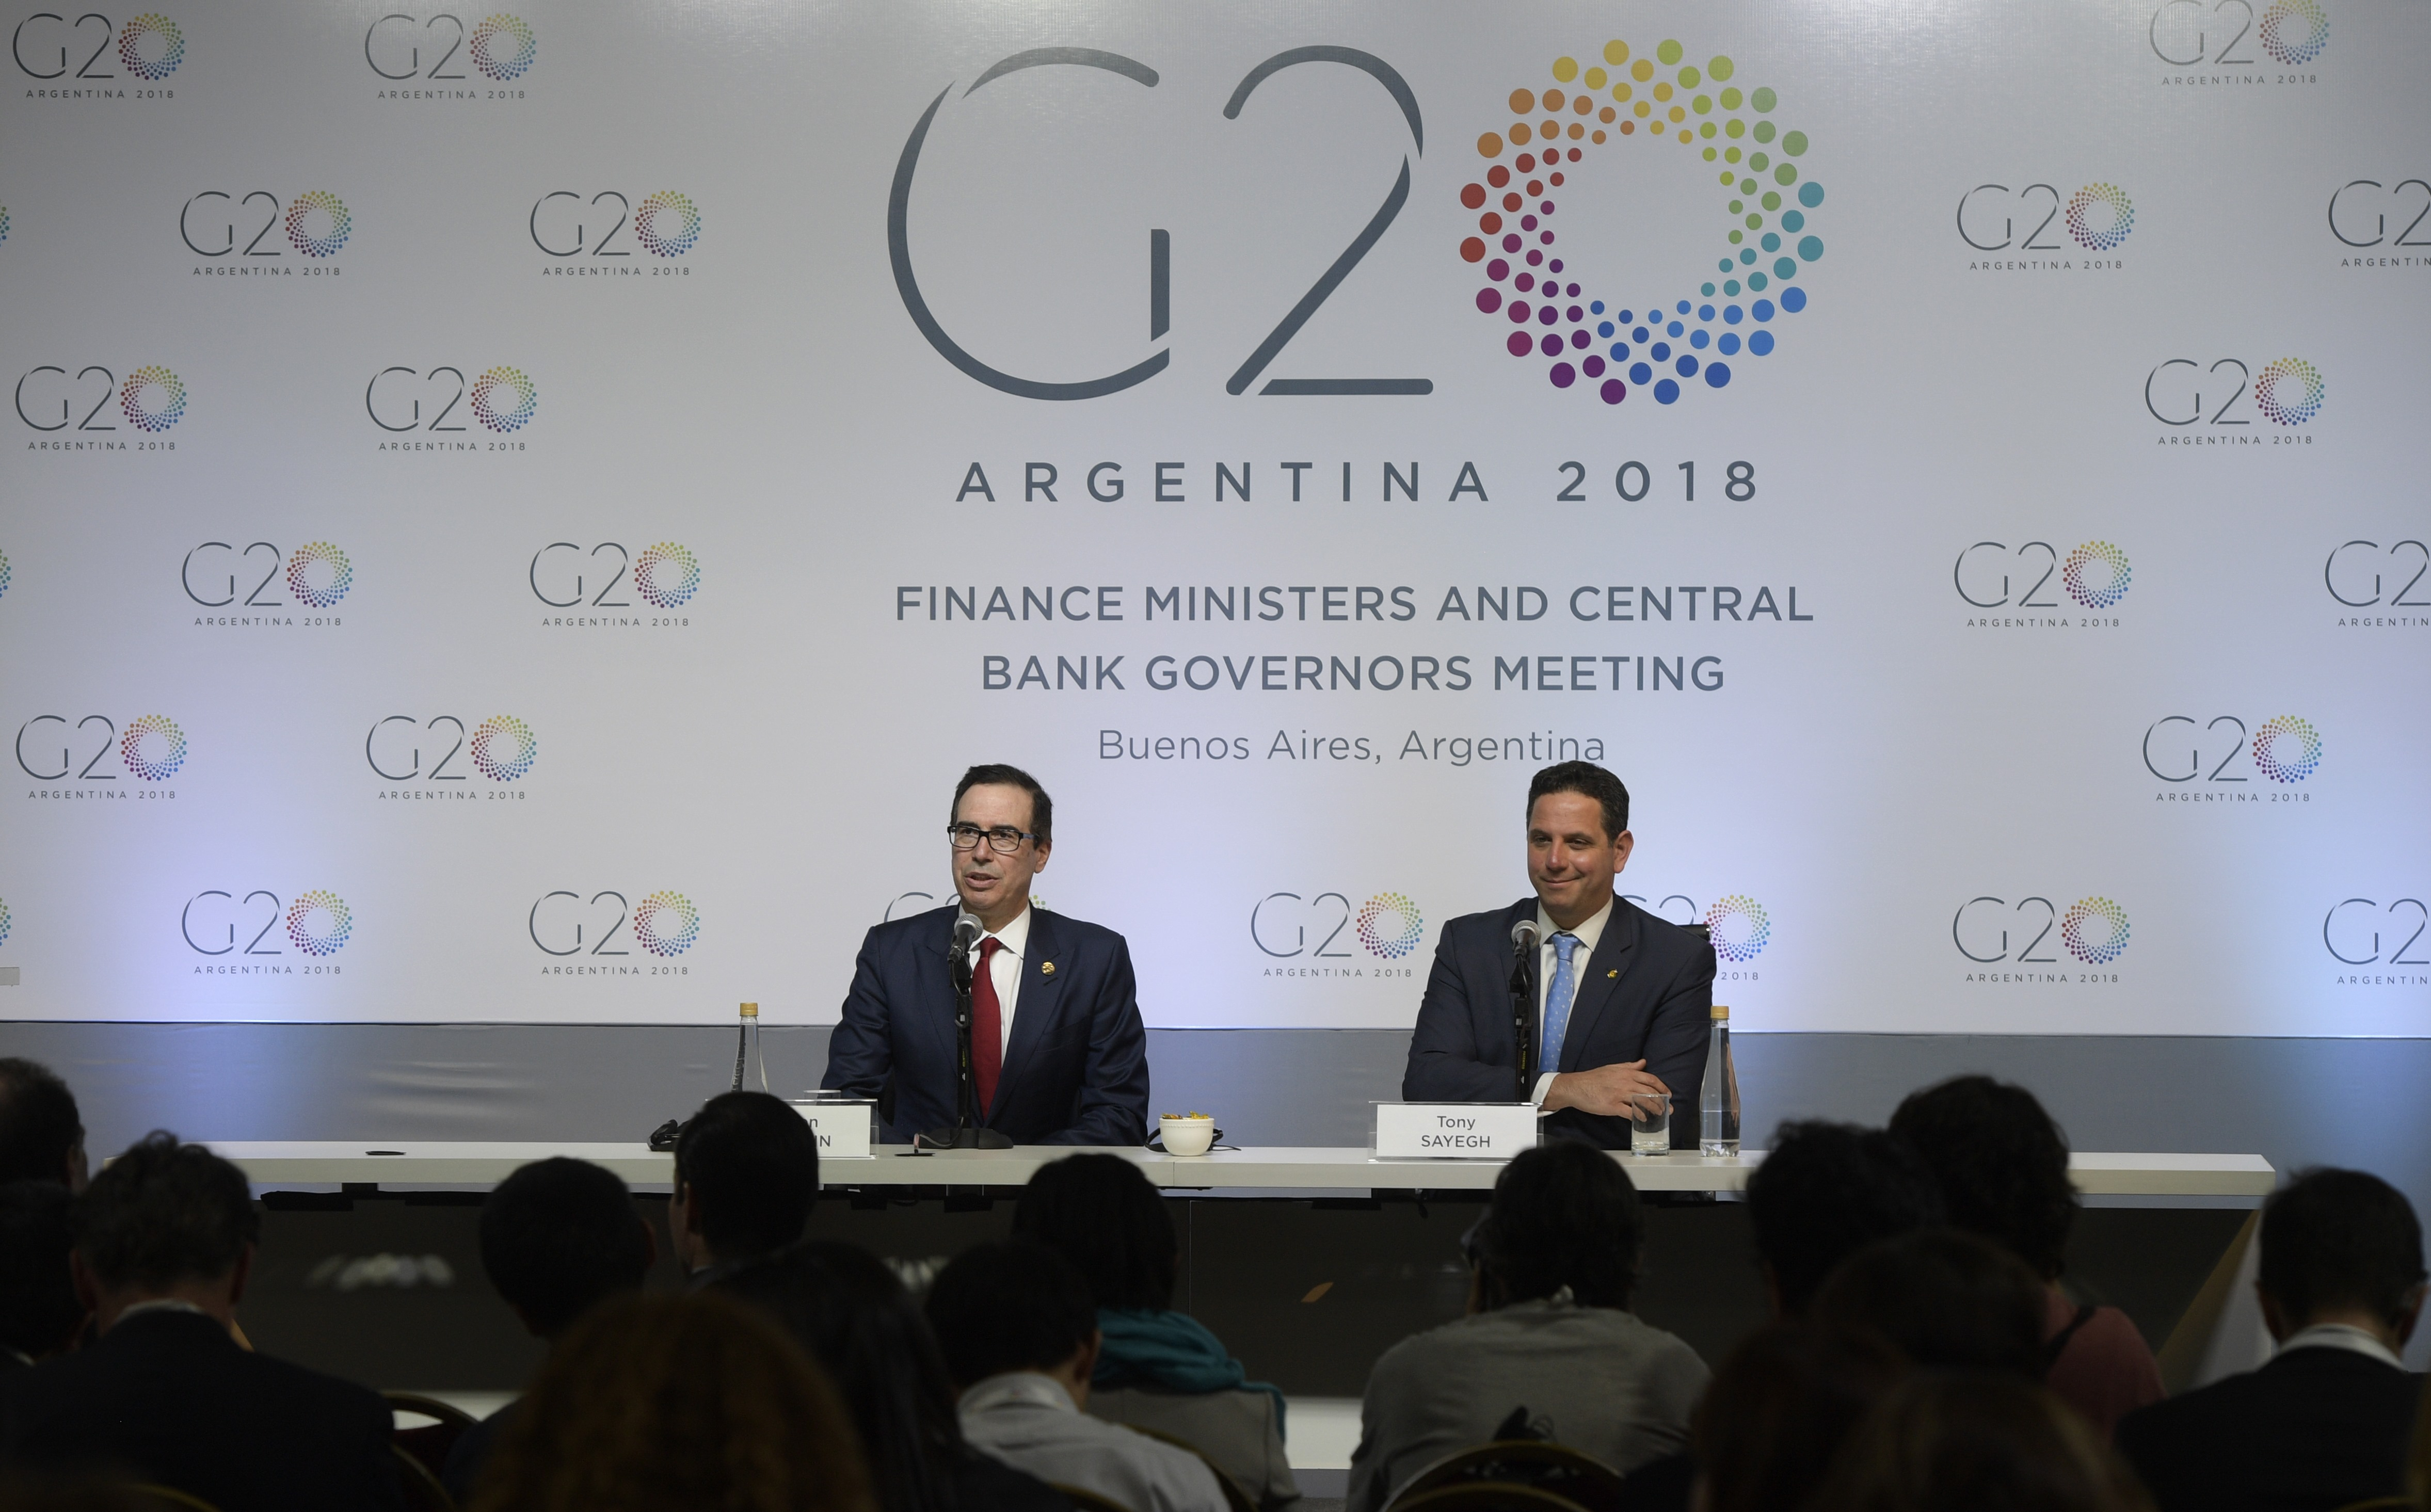 US Treasury Secretary Steven Mnuchin (L) delivers a speech next to Assistant Secretary for Public Affairs for the U.S. Department of the Treasury, Tony Sayegh, during the G20 meeting of Finance Ministers and Central Bank Governors, in Buenos Aires, on March 20, 2018.